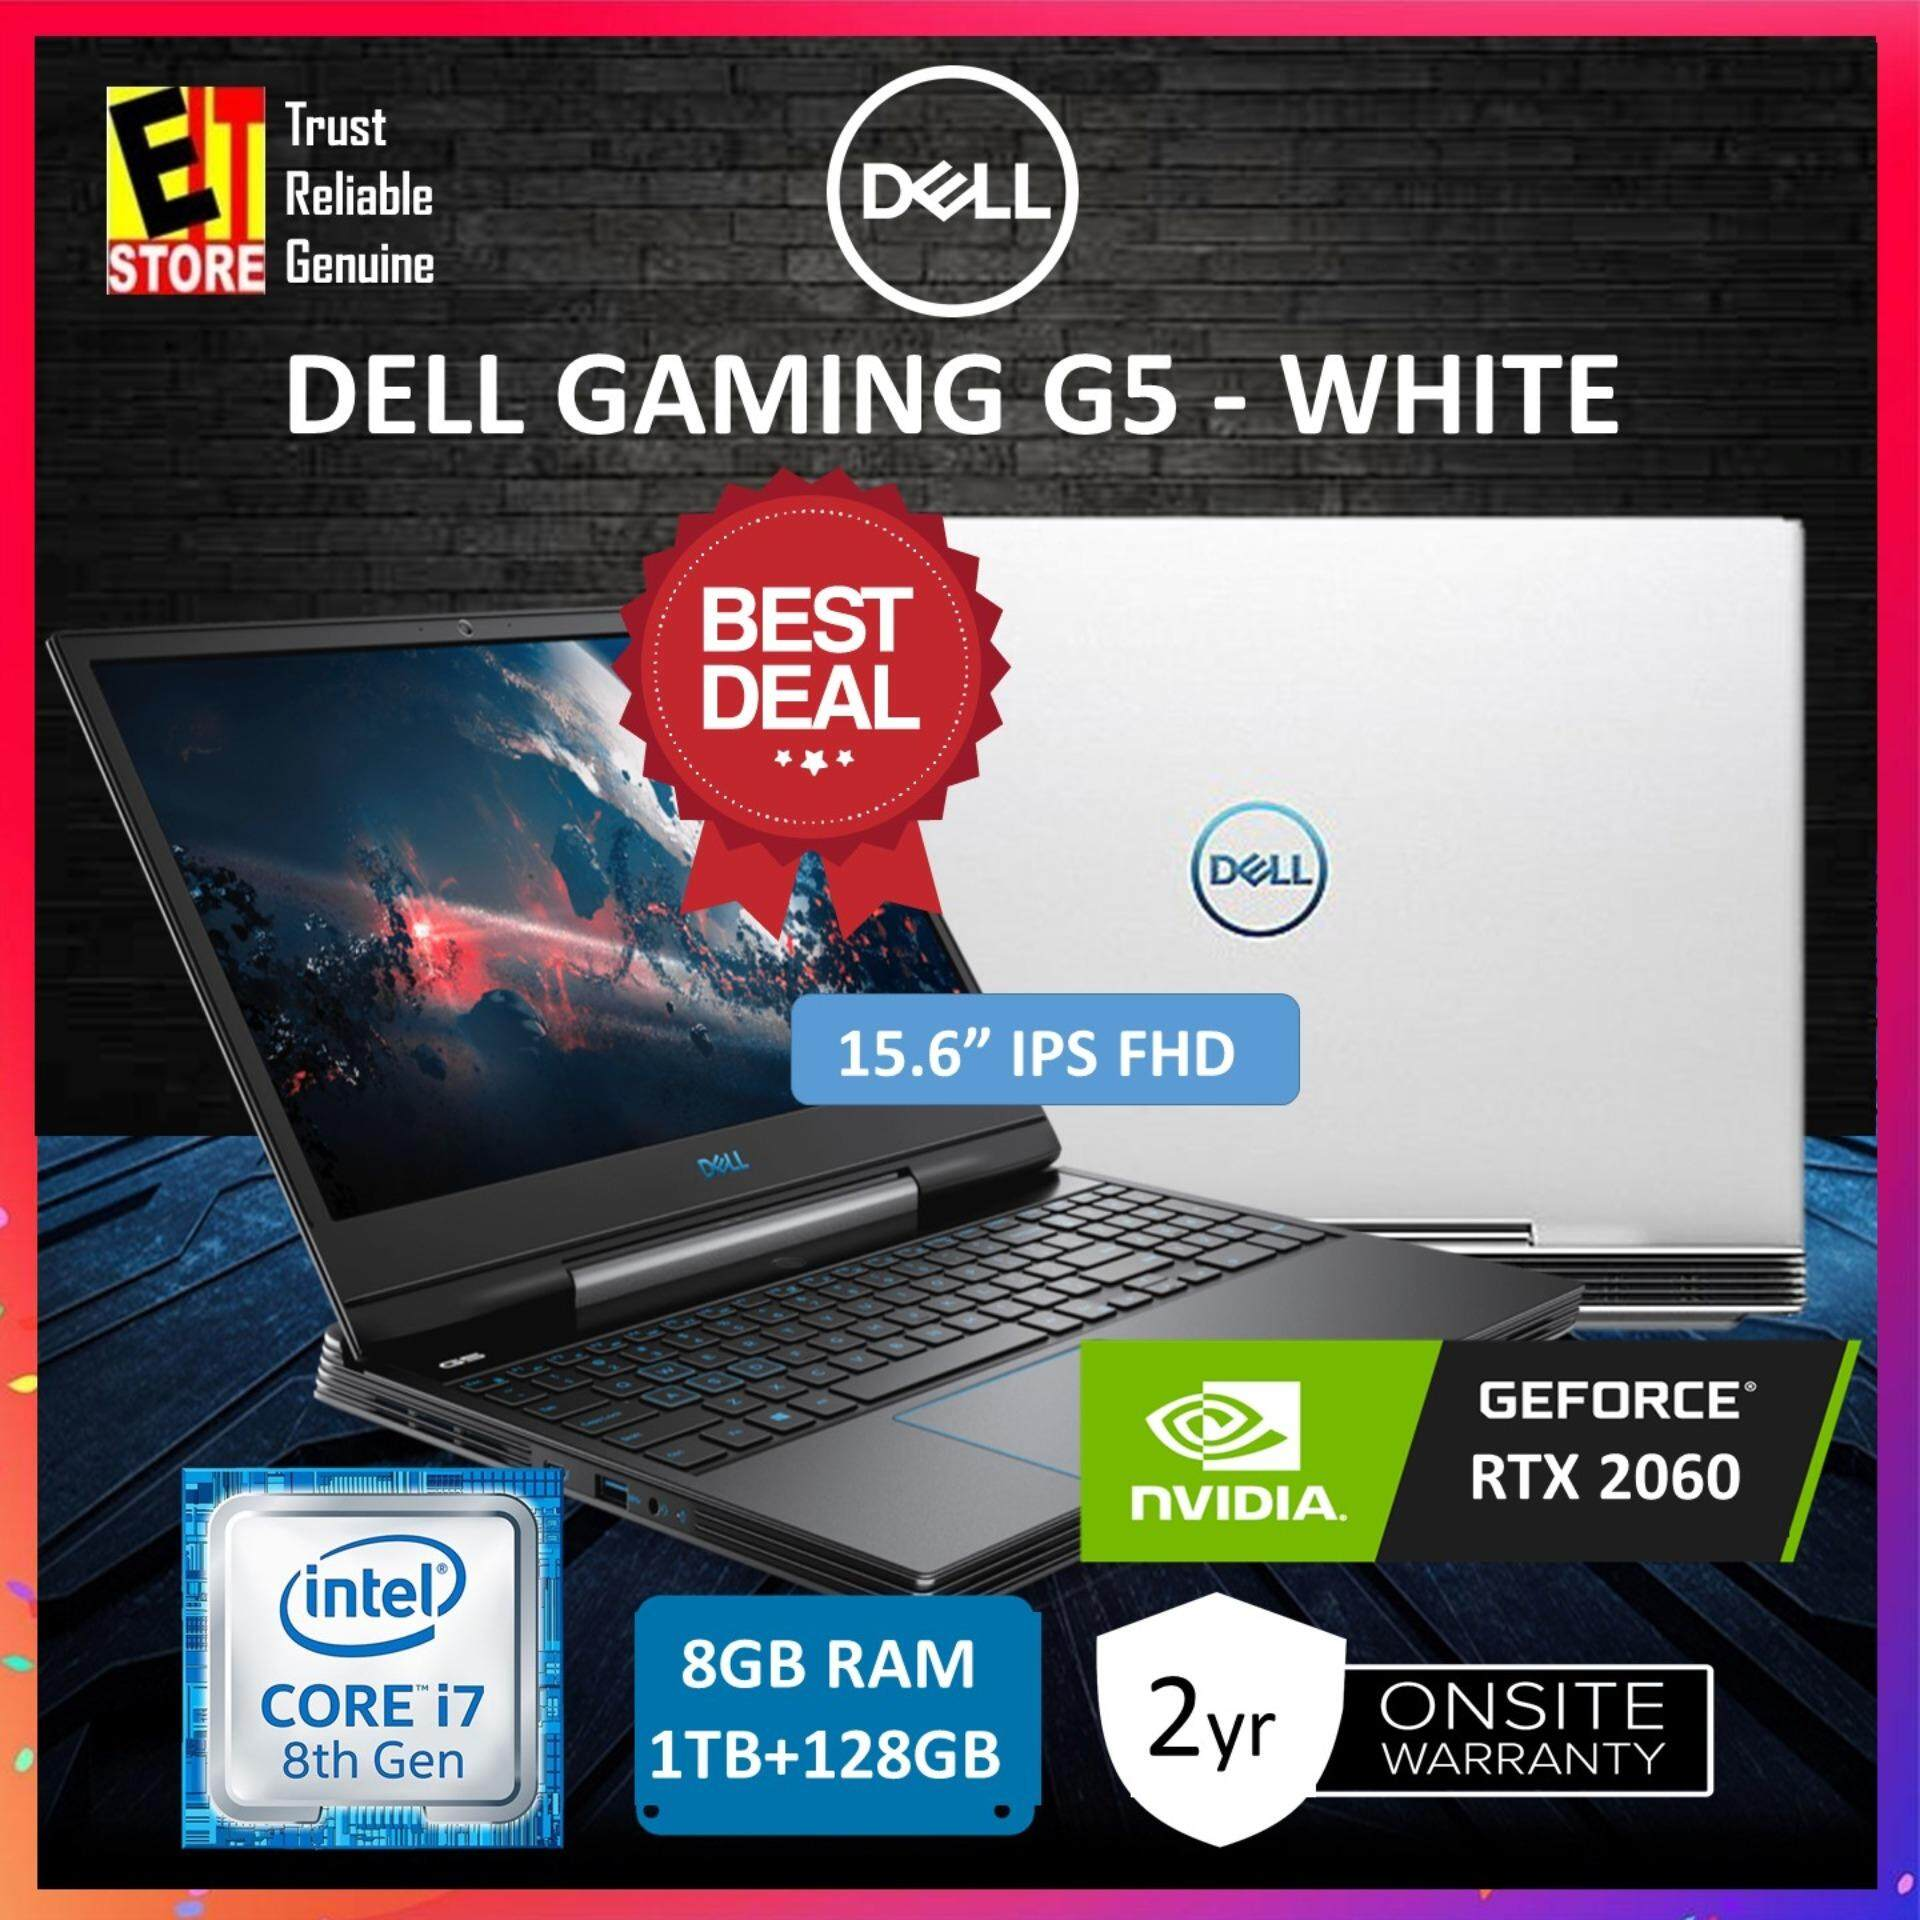 DELL GAMING G5-87816GFHD-W10-2060-SSD (I7-8750H/8GB/1TB+128GB SSD/15 6